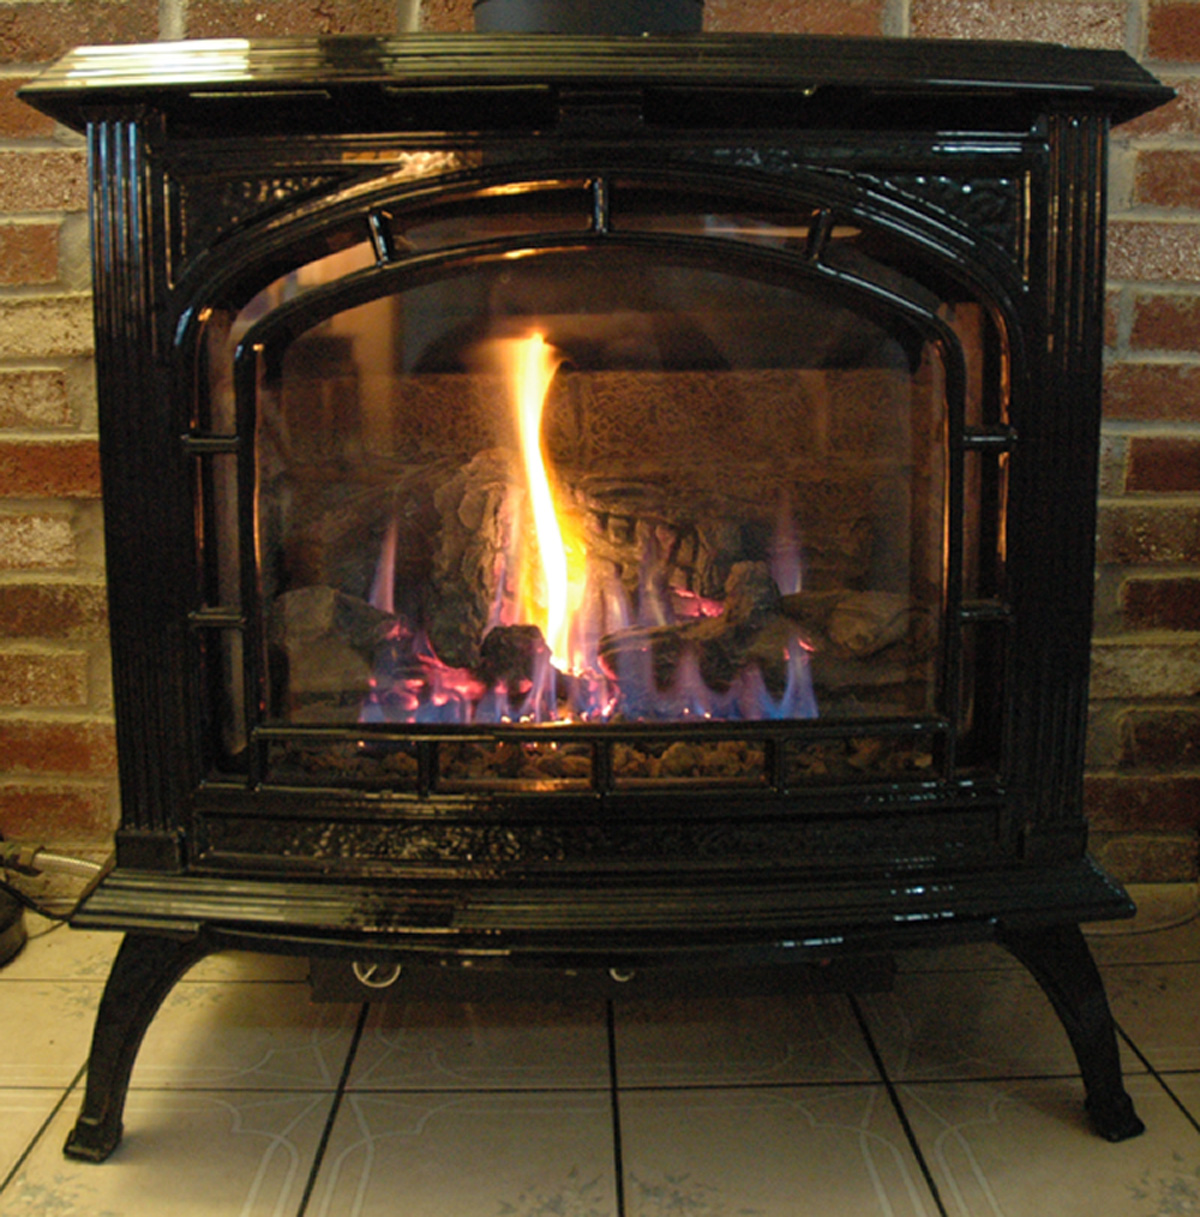 Wall Fireplace Gas Gas Direct Vent Space Heaters Fireplaces And Wall Furnaces